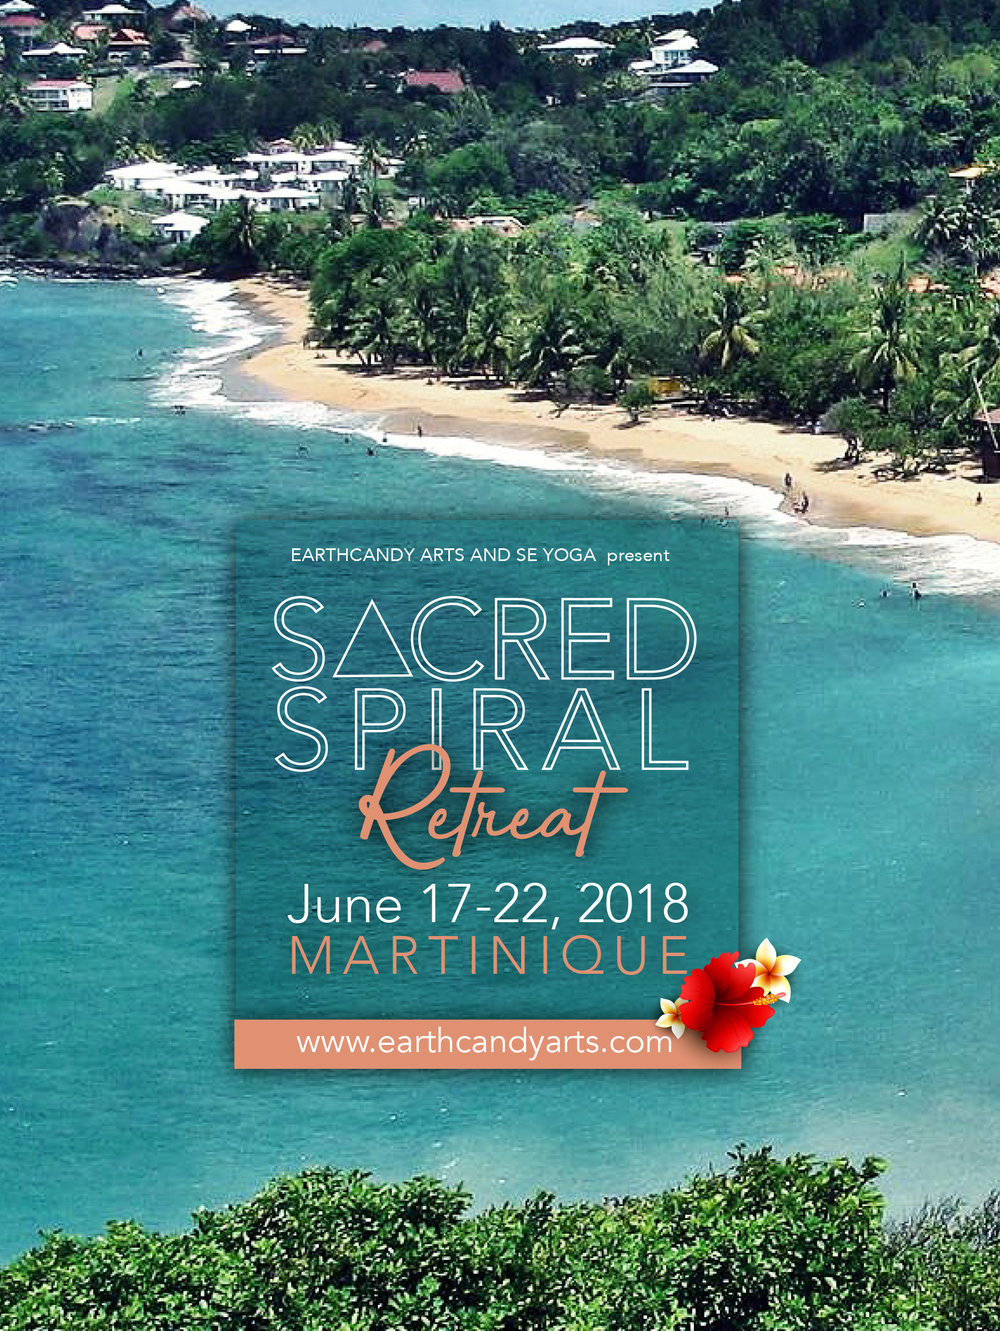 SACRED SPIRAL RETREAT - Spend 5 days in the French West Indies immersed in the beauty and magic of the island of Martinique for a Wellness retreat, curated by Jamila Crawford Pécou and Ebony DesRoses.SACRED SPIRAL is suitable for those who want to align themselves on all levels. We offer you the opportunity to gently leave your comfort zone, while still creating a nurturing, healthy and safe adventure in a beautiful environment. It's about connection, enjoying life, holistic living, vegan food and paradise! This is your sacred space-- a time to relax and fully focus on you and yourself.Come take the time just to 'BE': be the free spirit, the adventure seeking traveller, the pursuer of happiness...